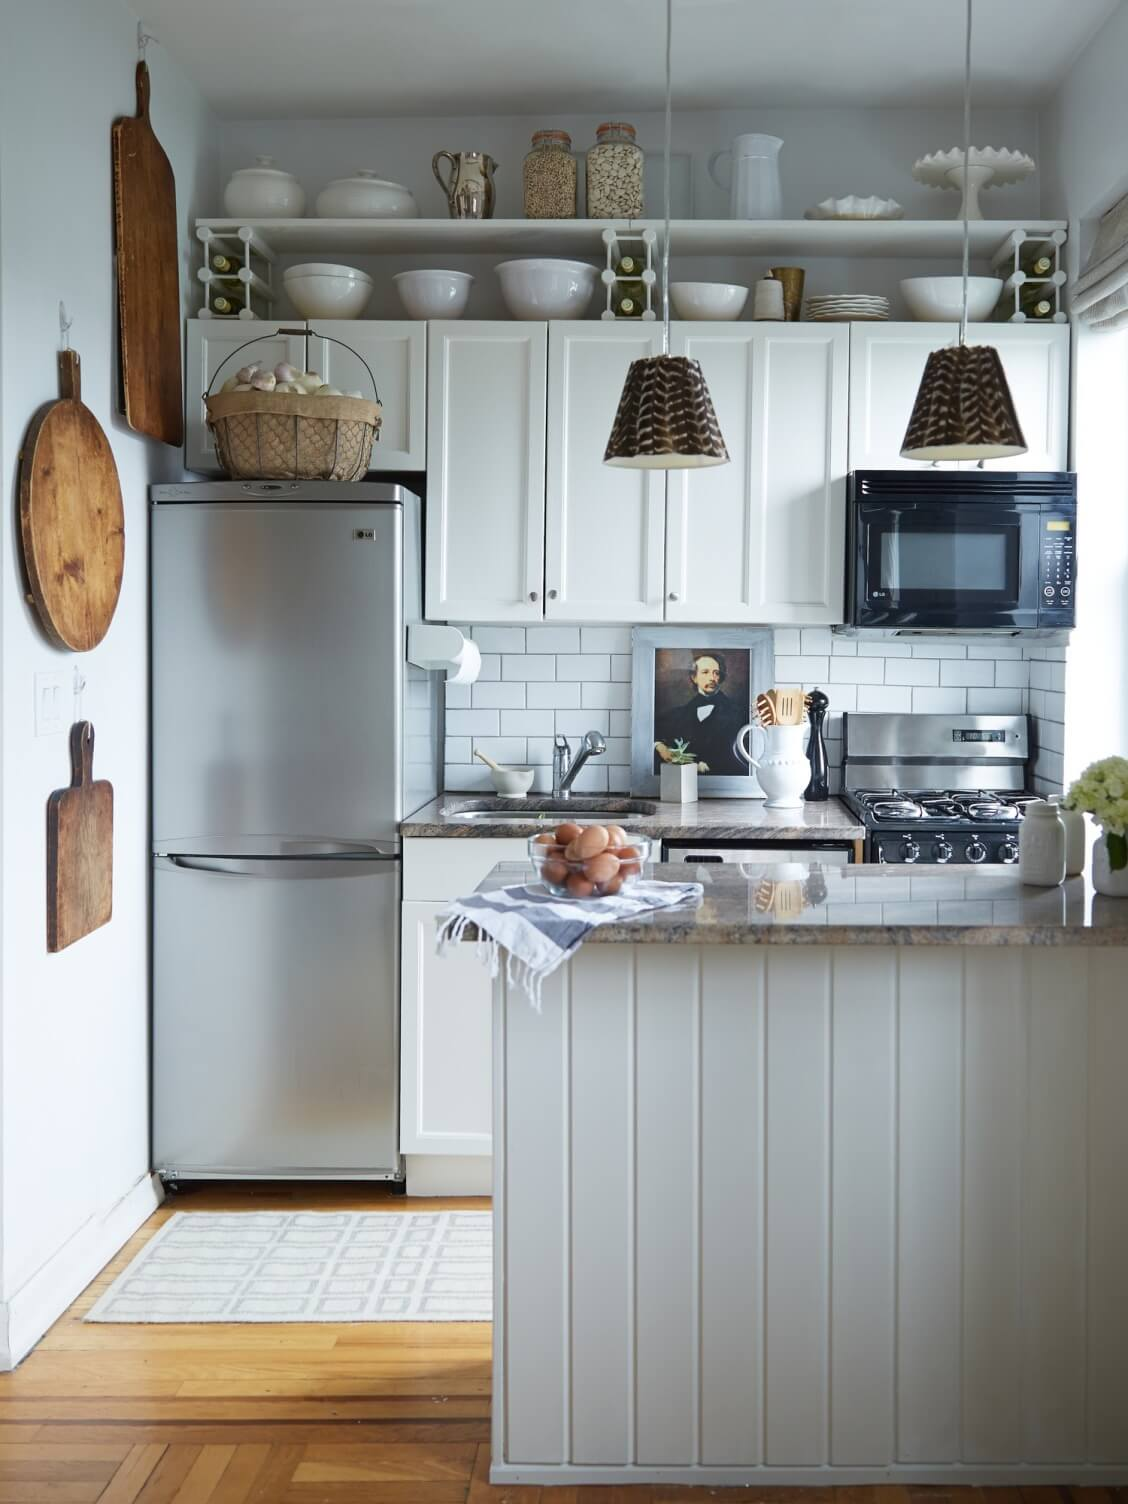 30 Best Small Kitchen Decor and Design Ideas for 2018